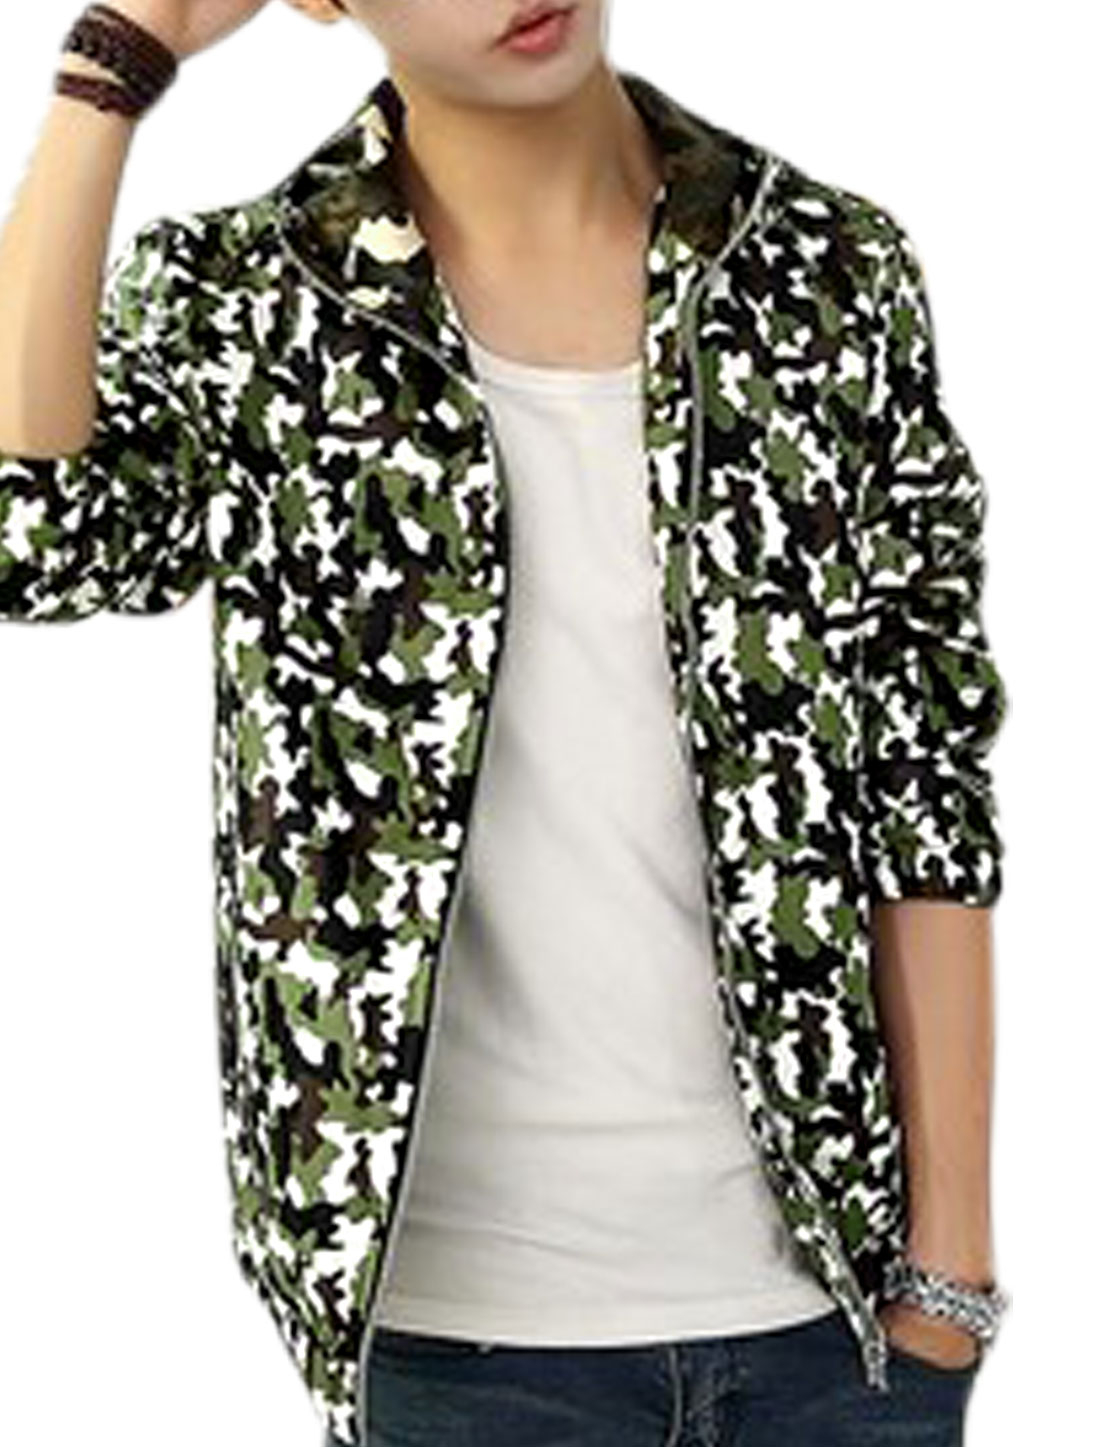 Men Zip Closed Camouflage Pattern Hooded Trendy Jacket Army Green White M